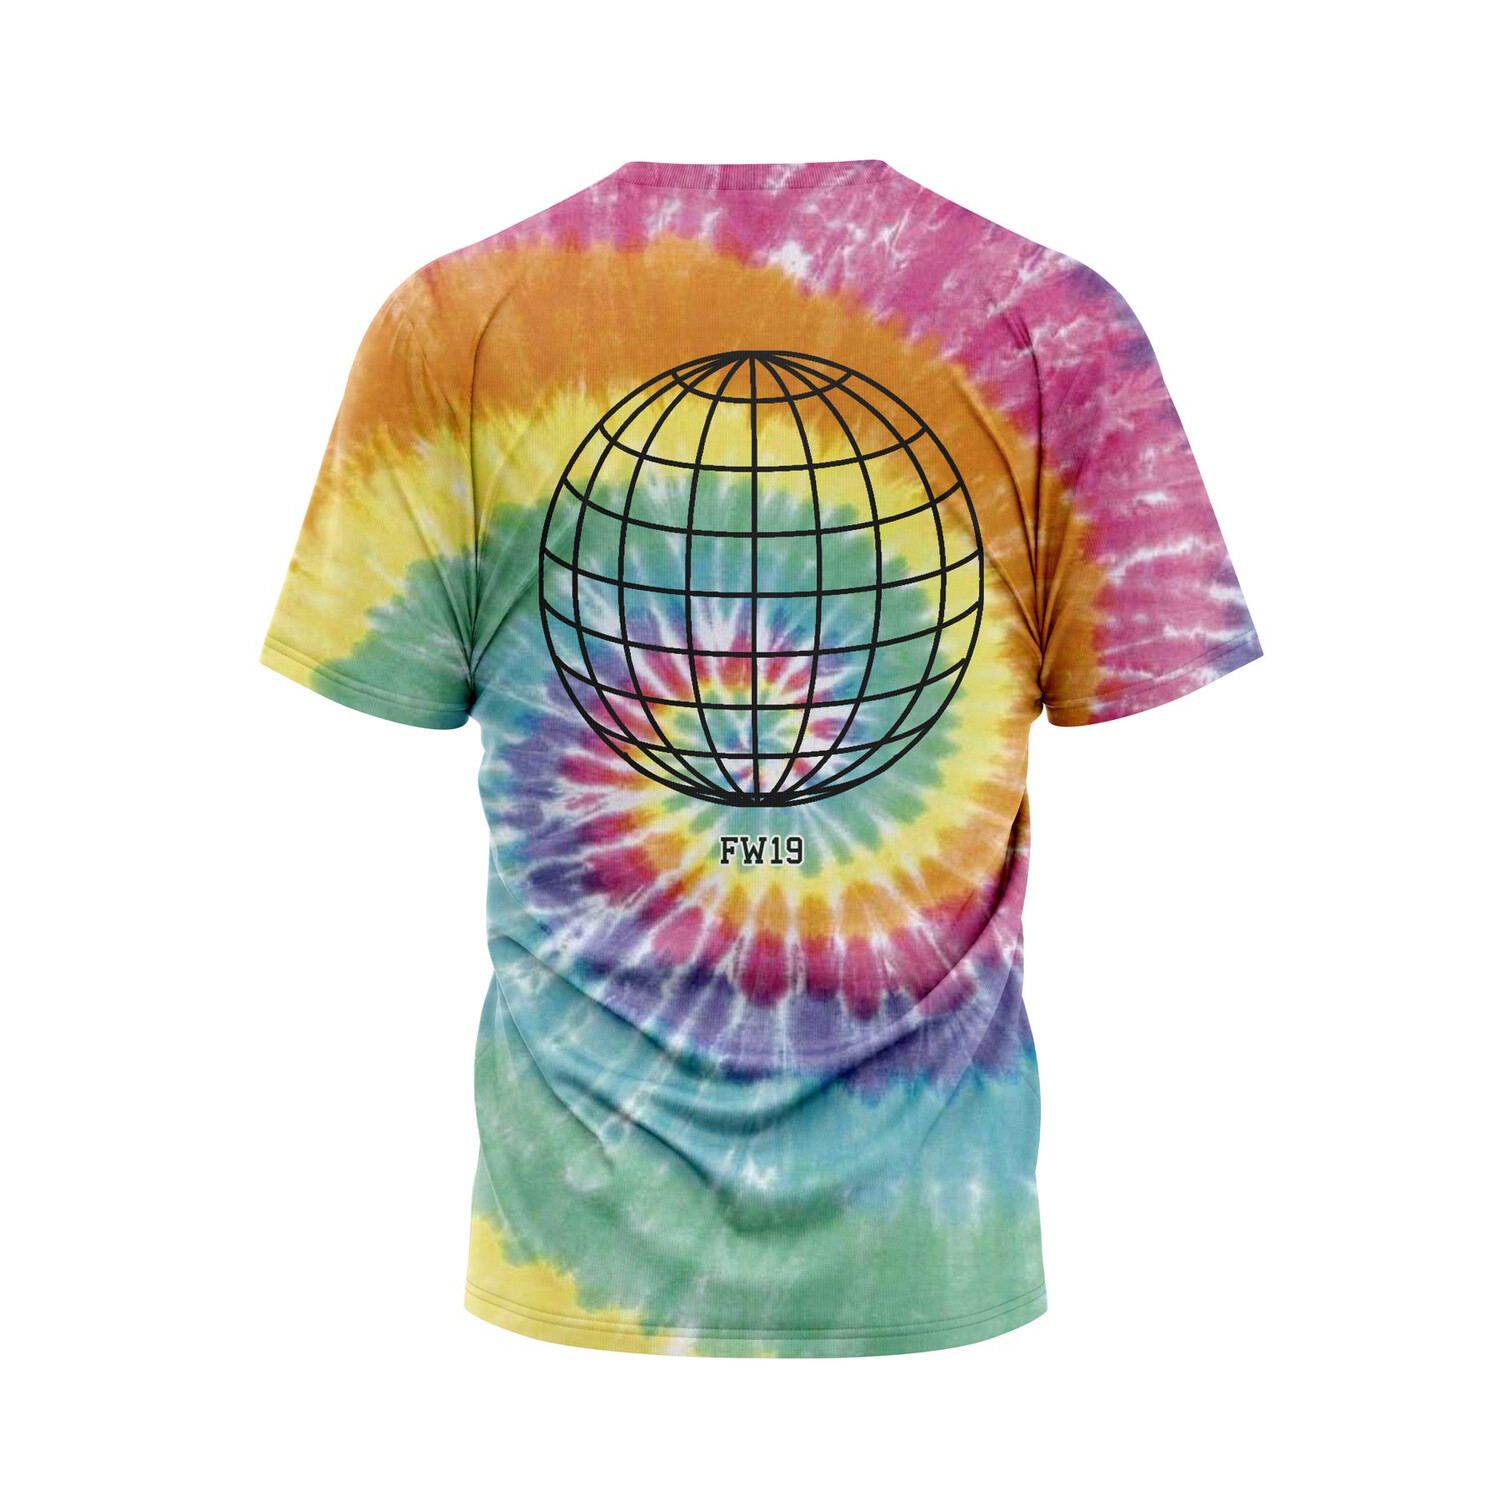 The Only One TYE-DYE TEE